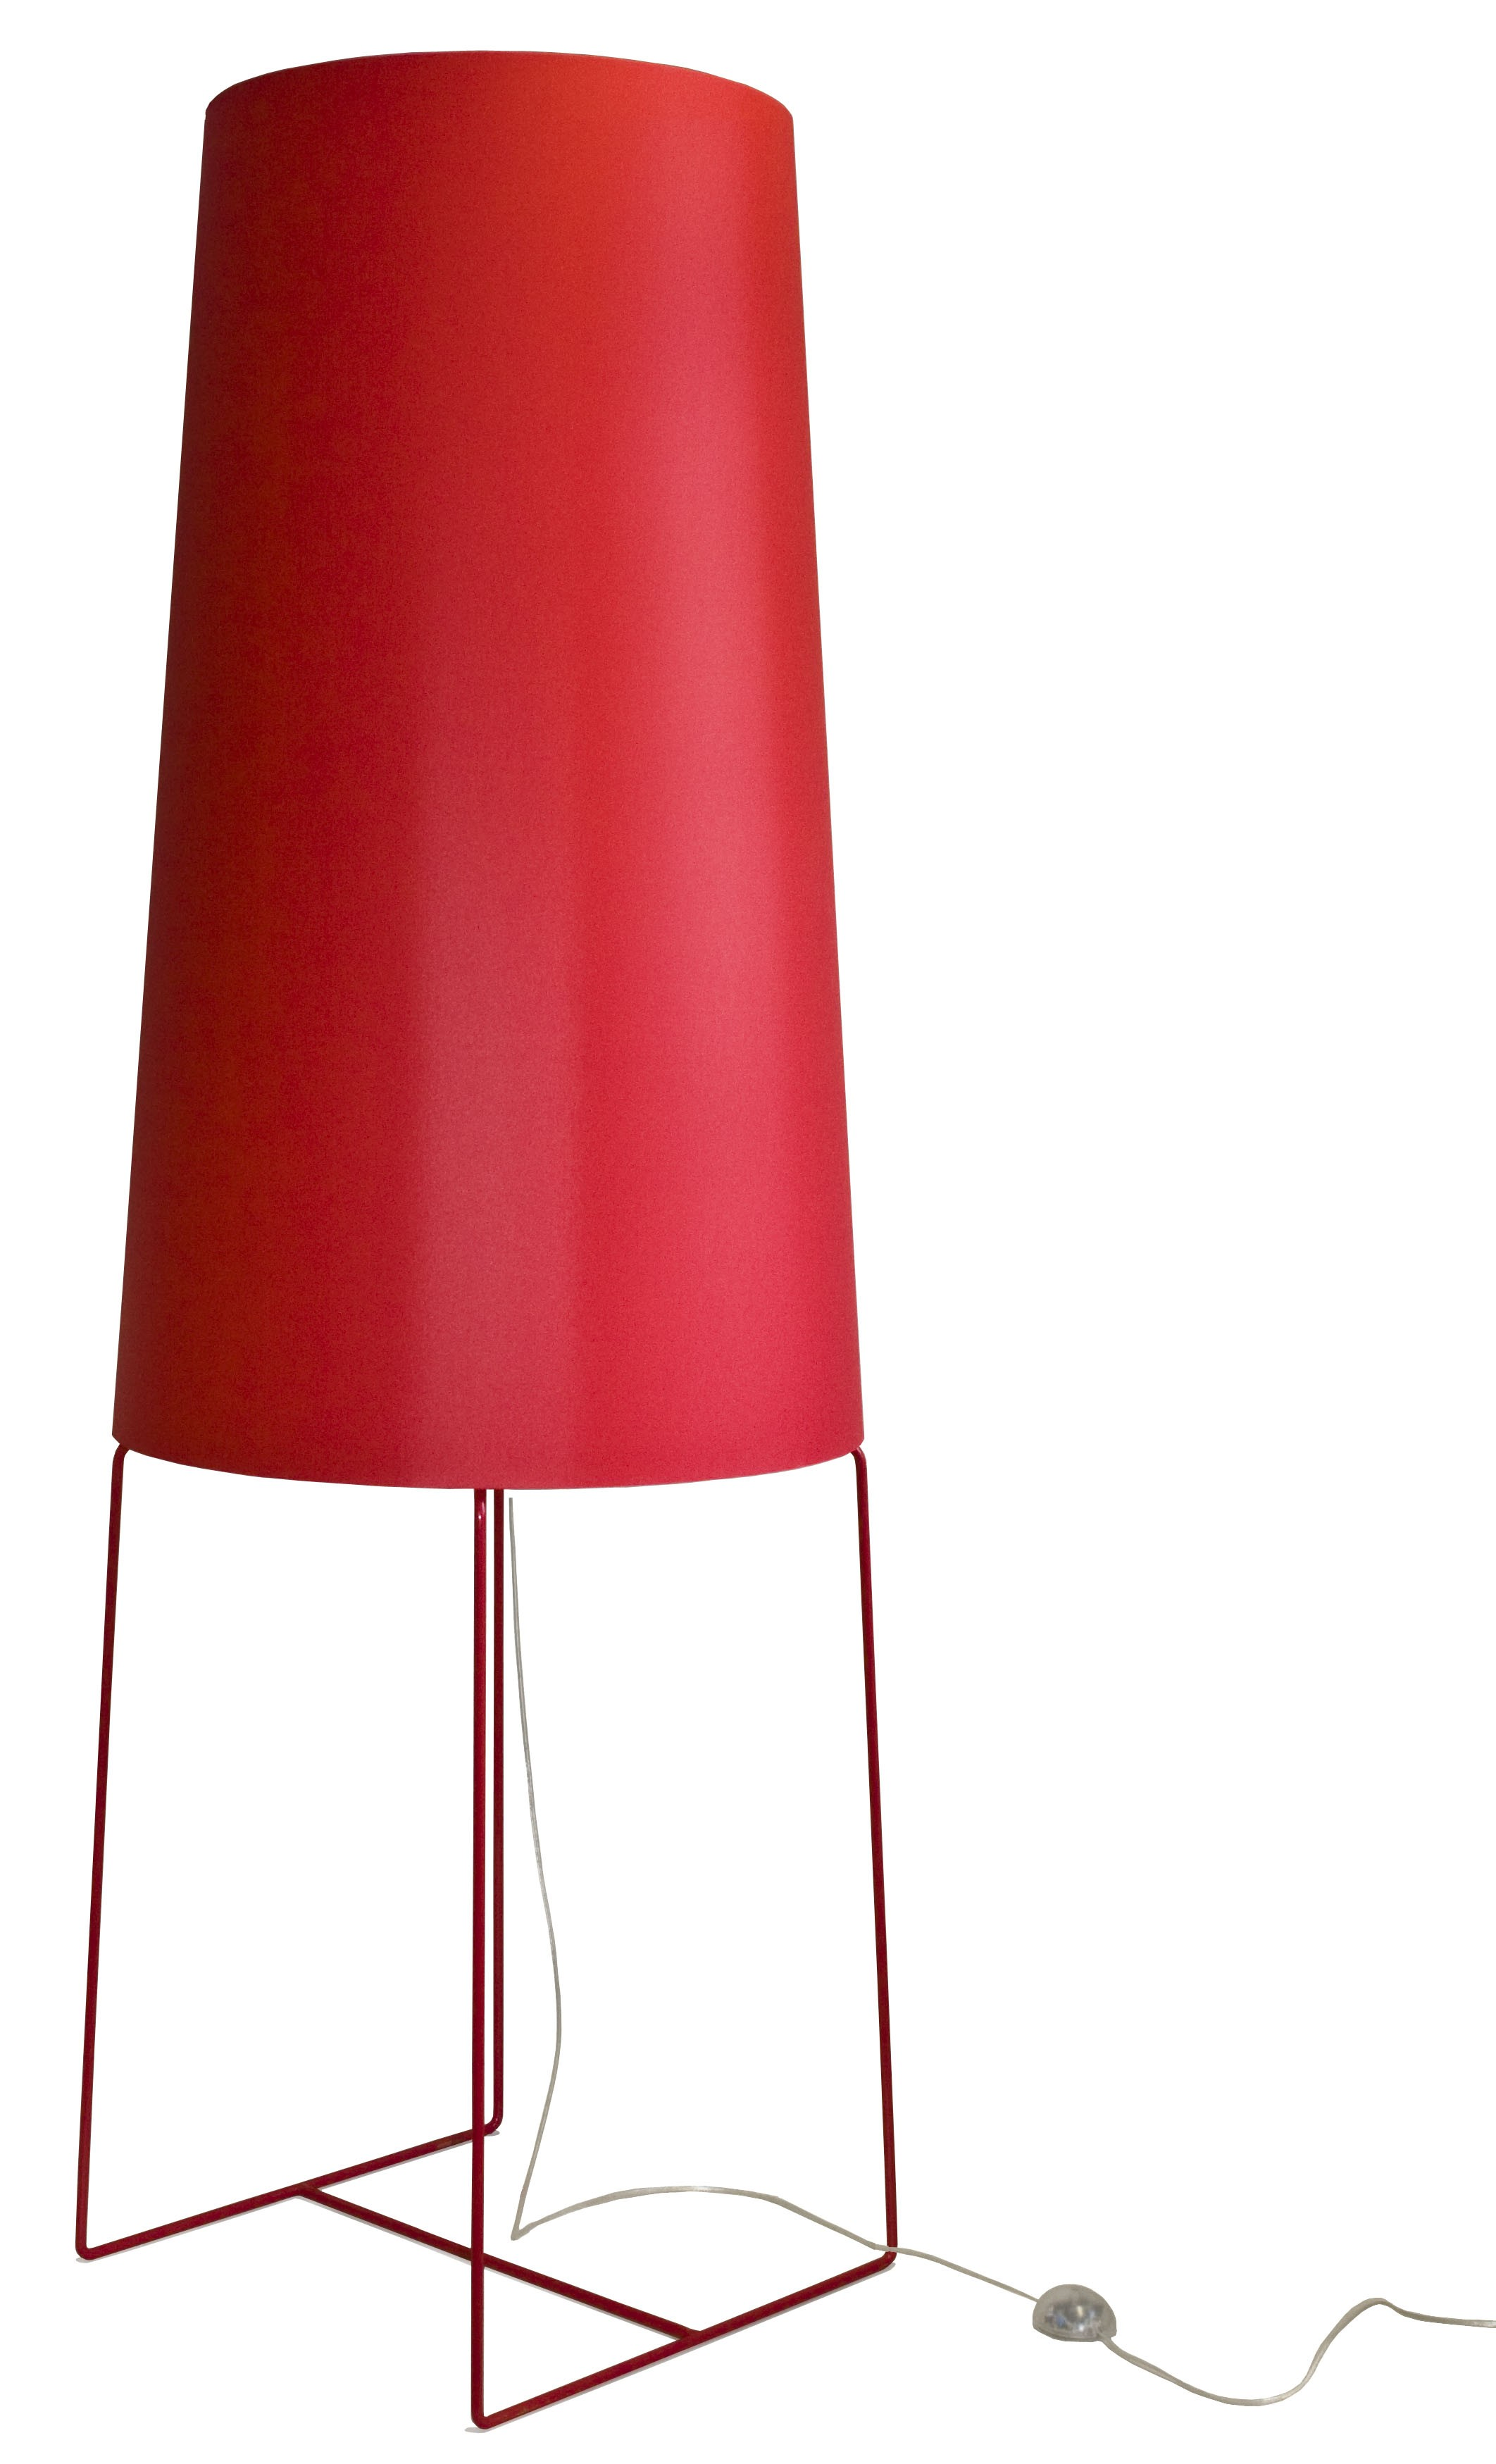 XXL Stehleuchte rot, moderne Stehlampe rot, Stehlampe rot